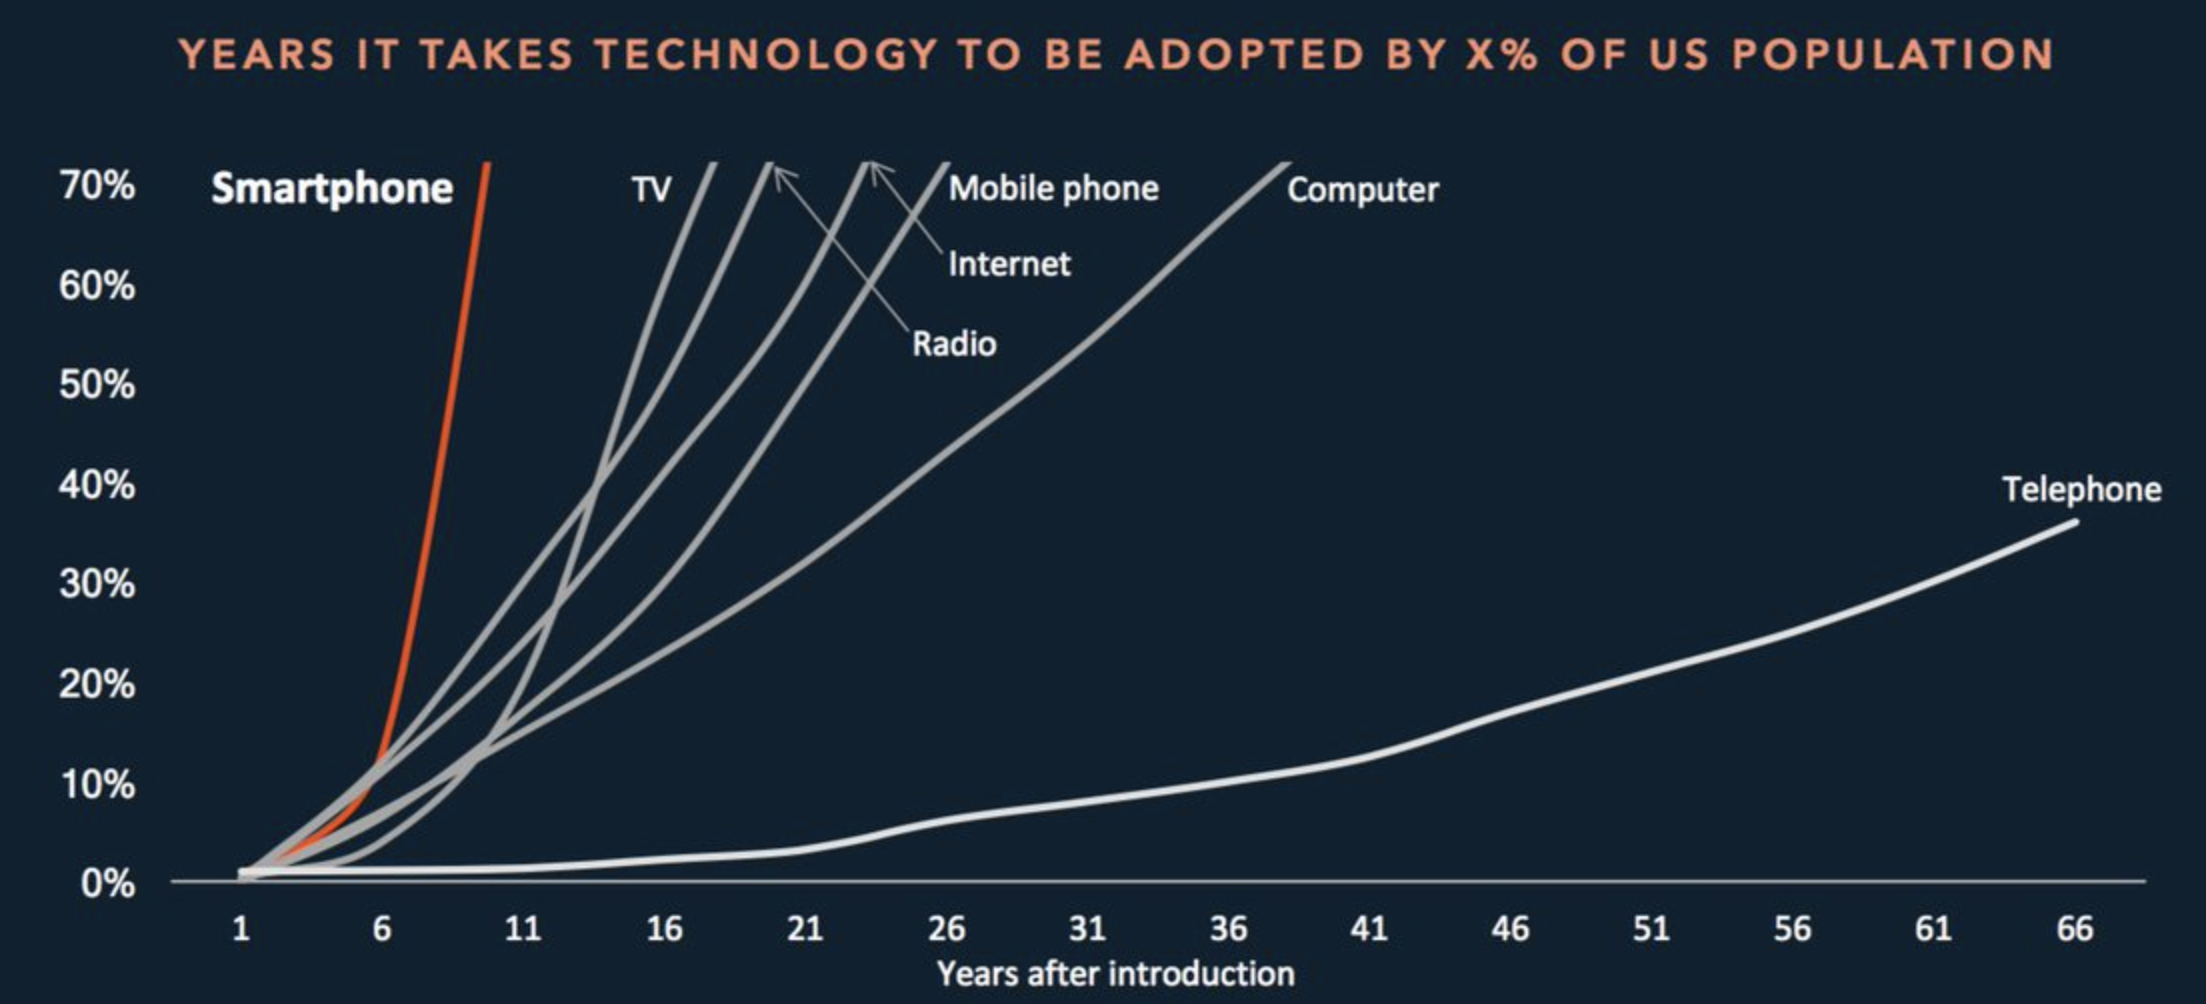 Pace of adoption